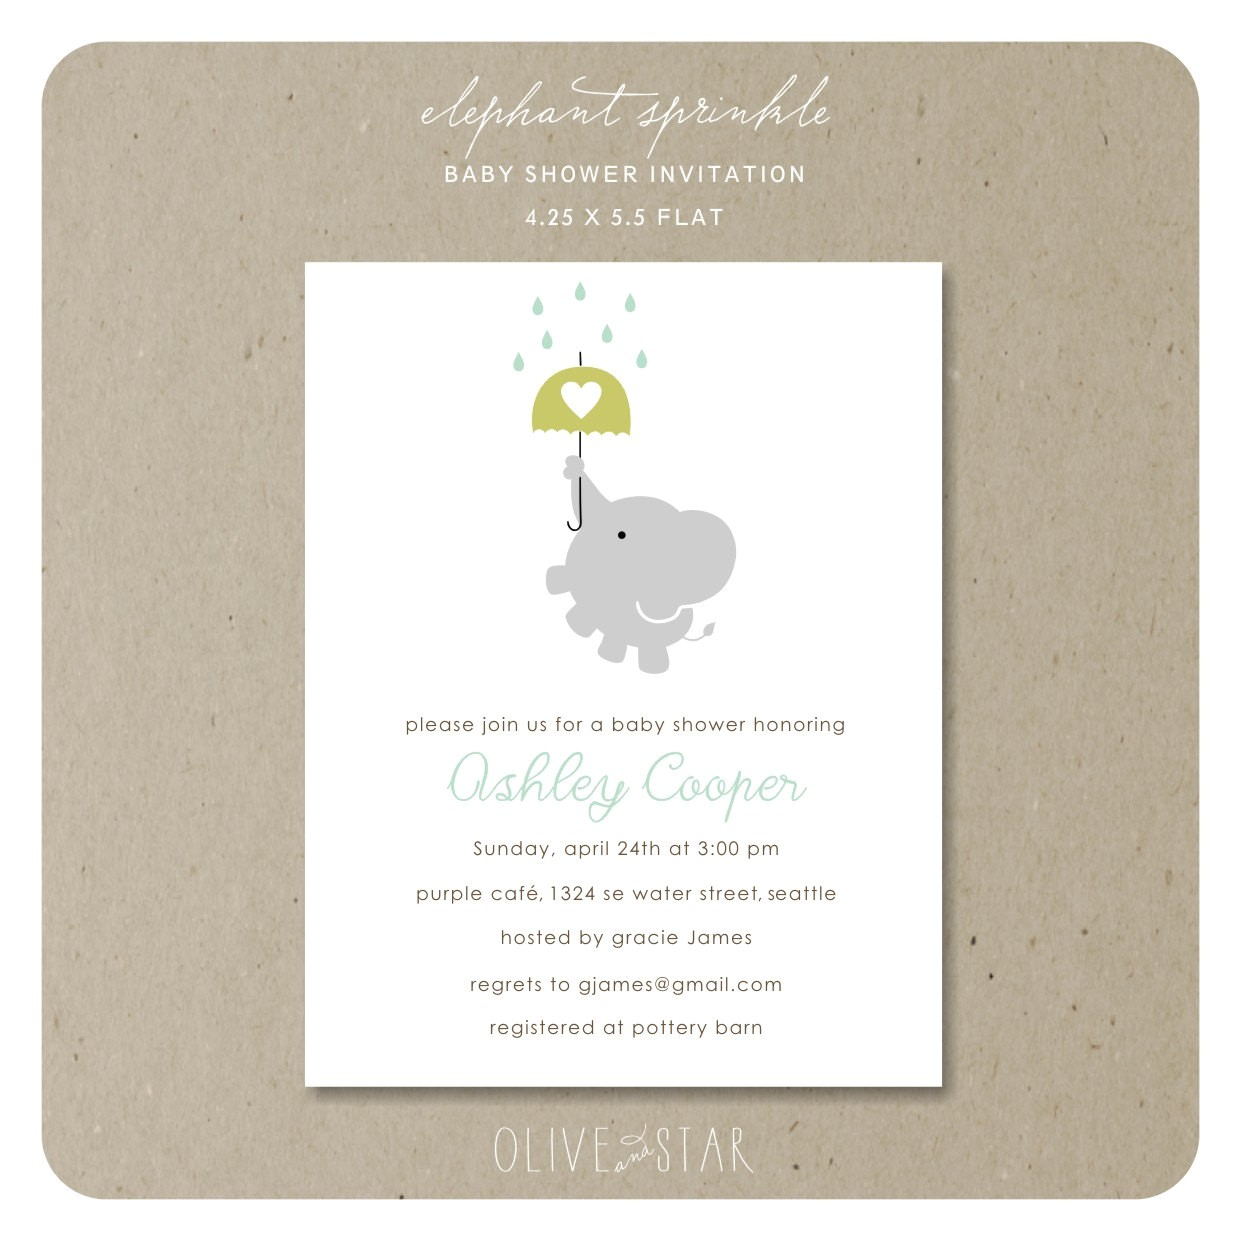 elephant sprinkle baby shower invitation